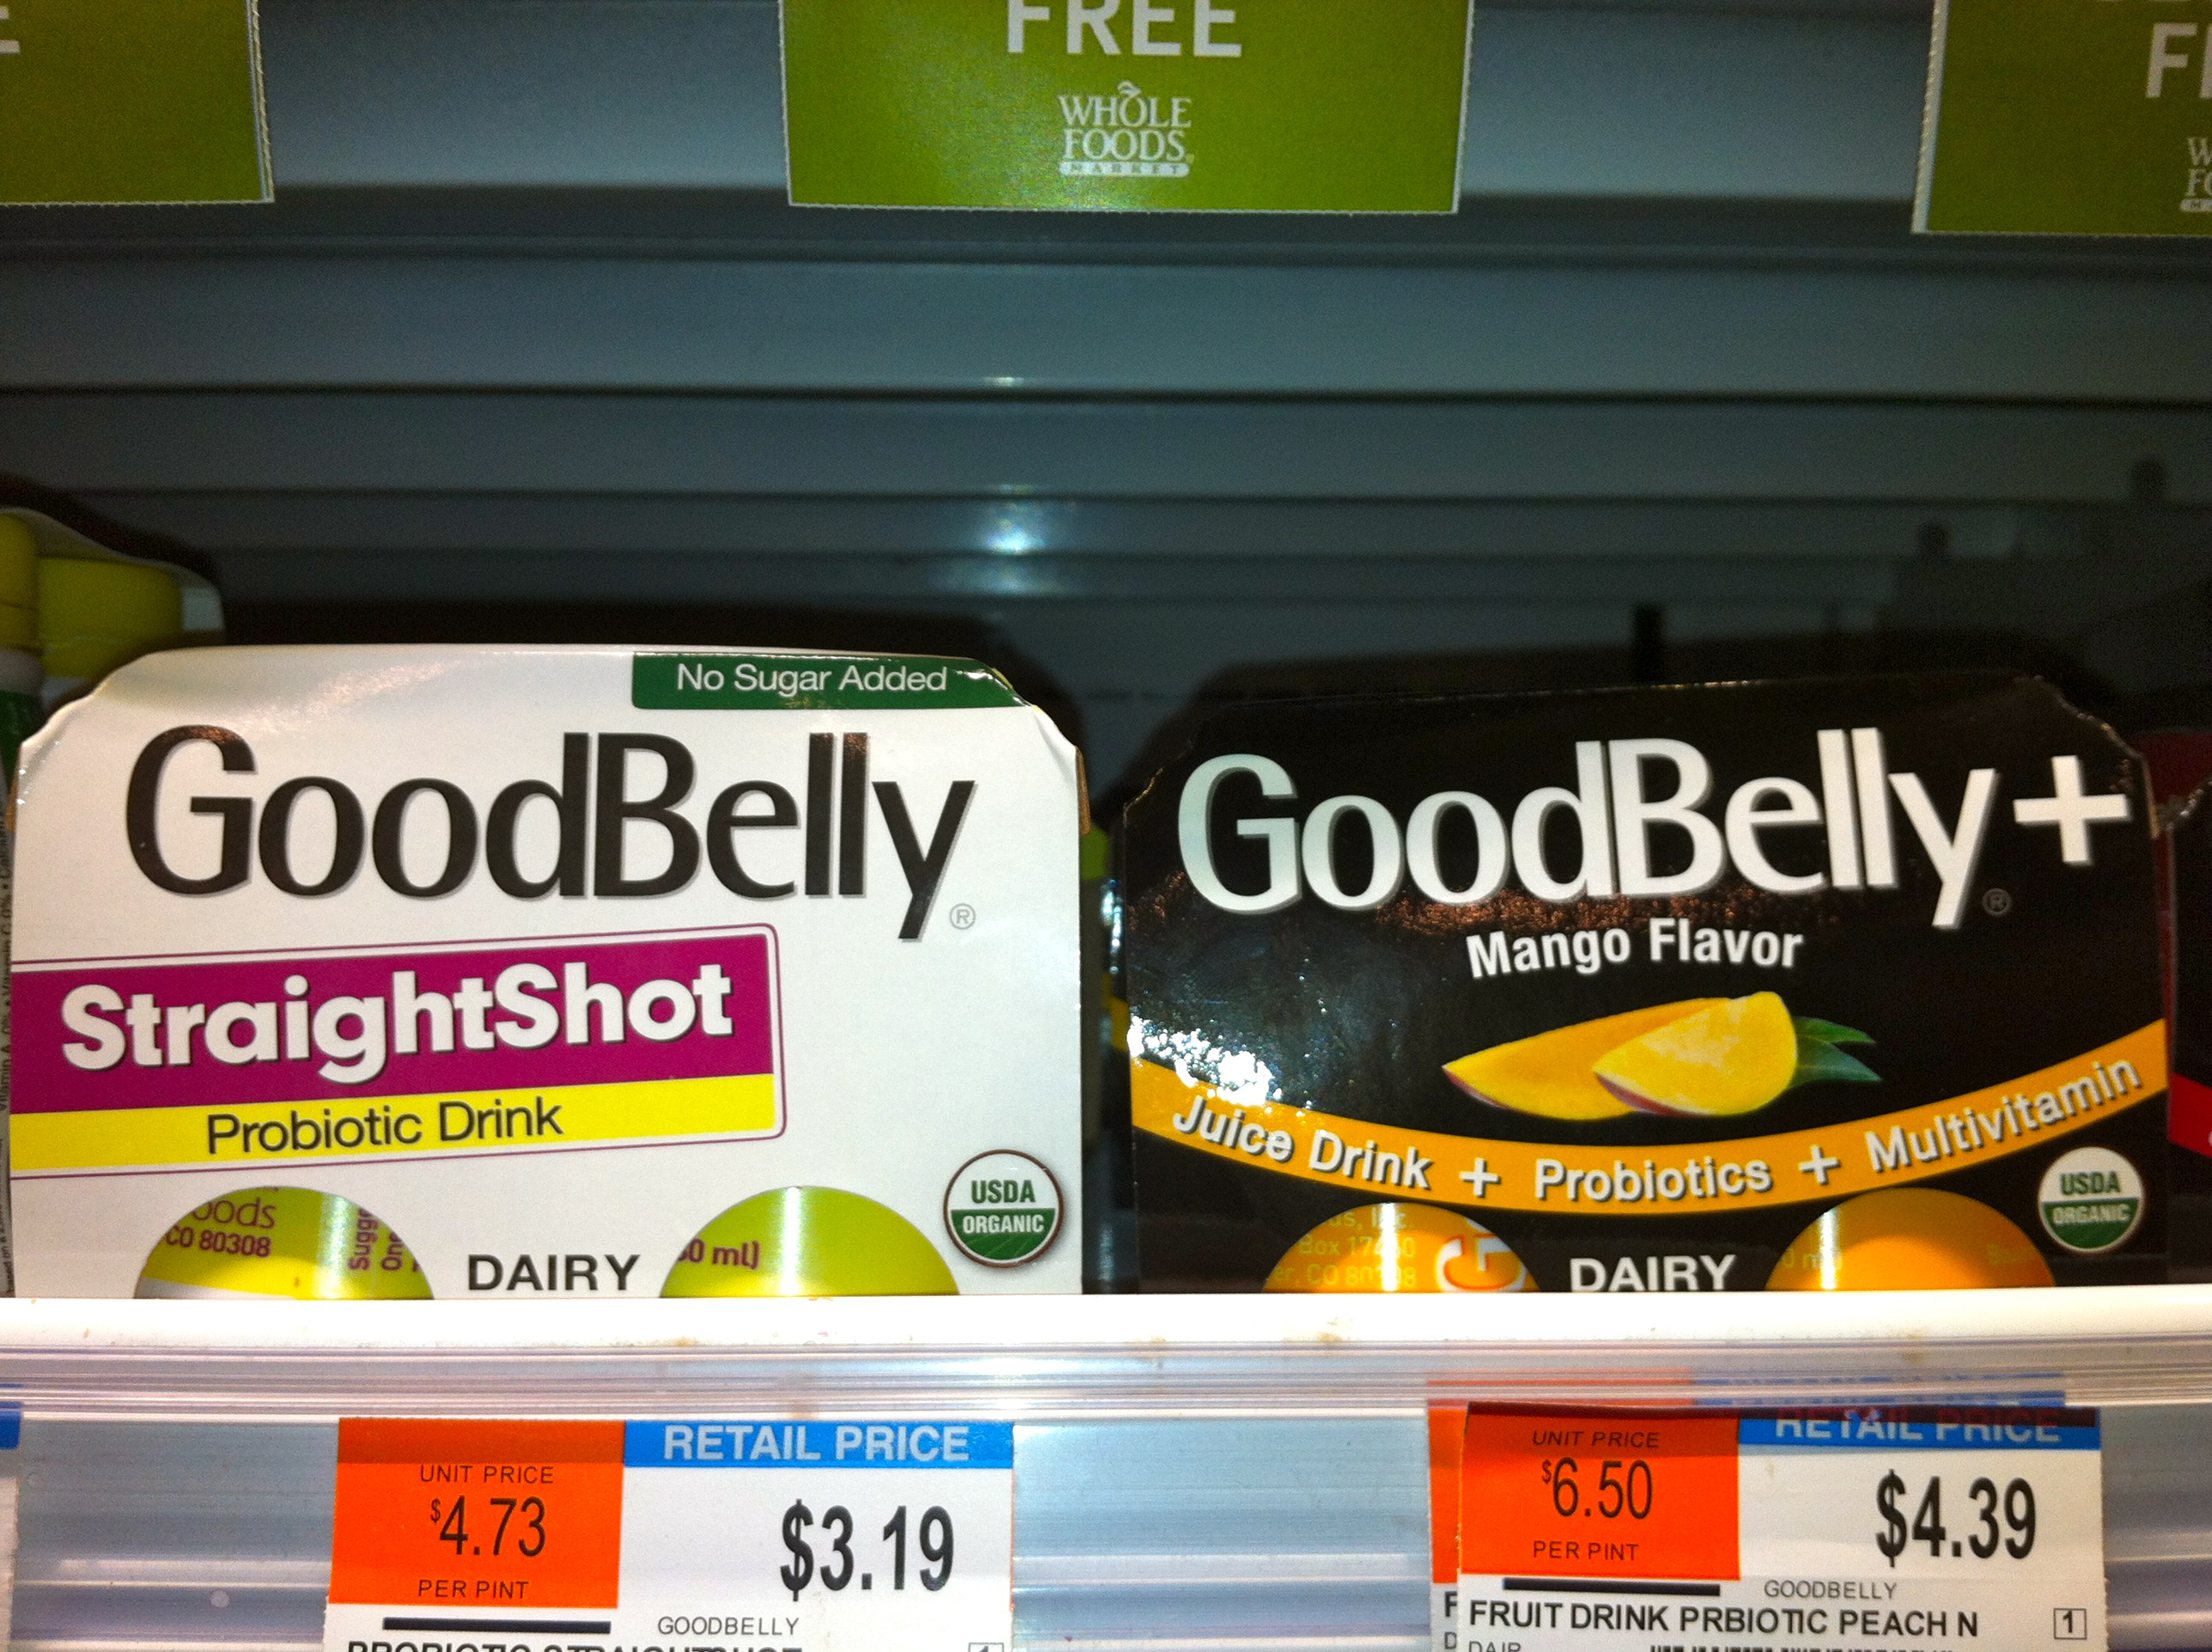 probiotic food shots in the USA